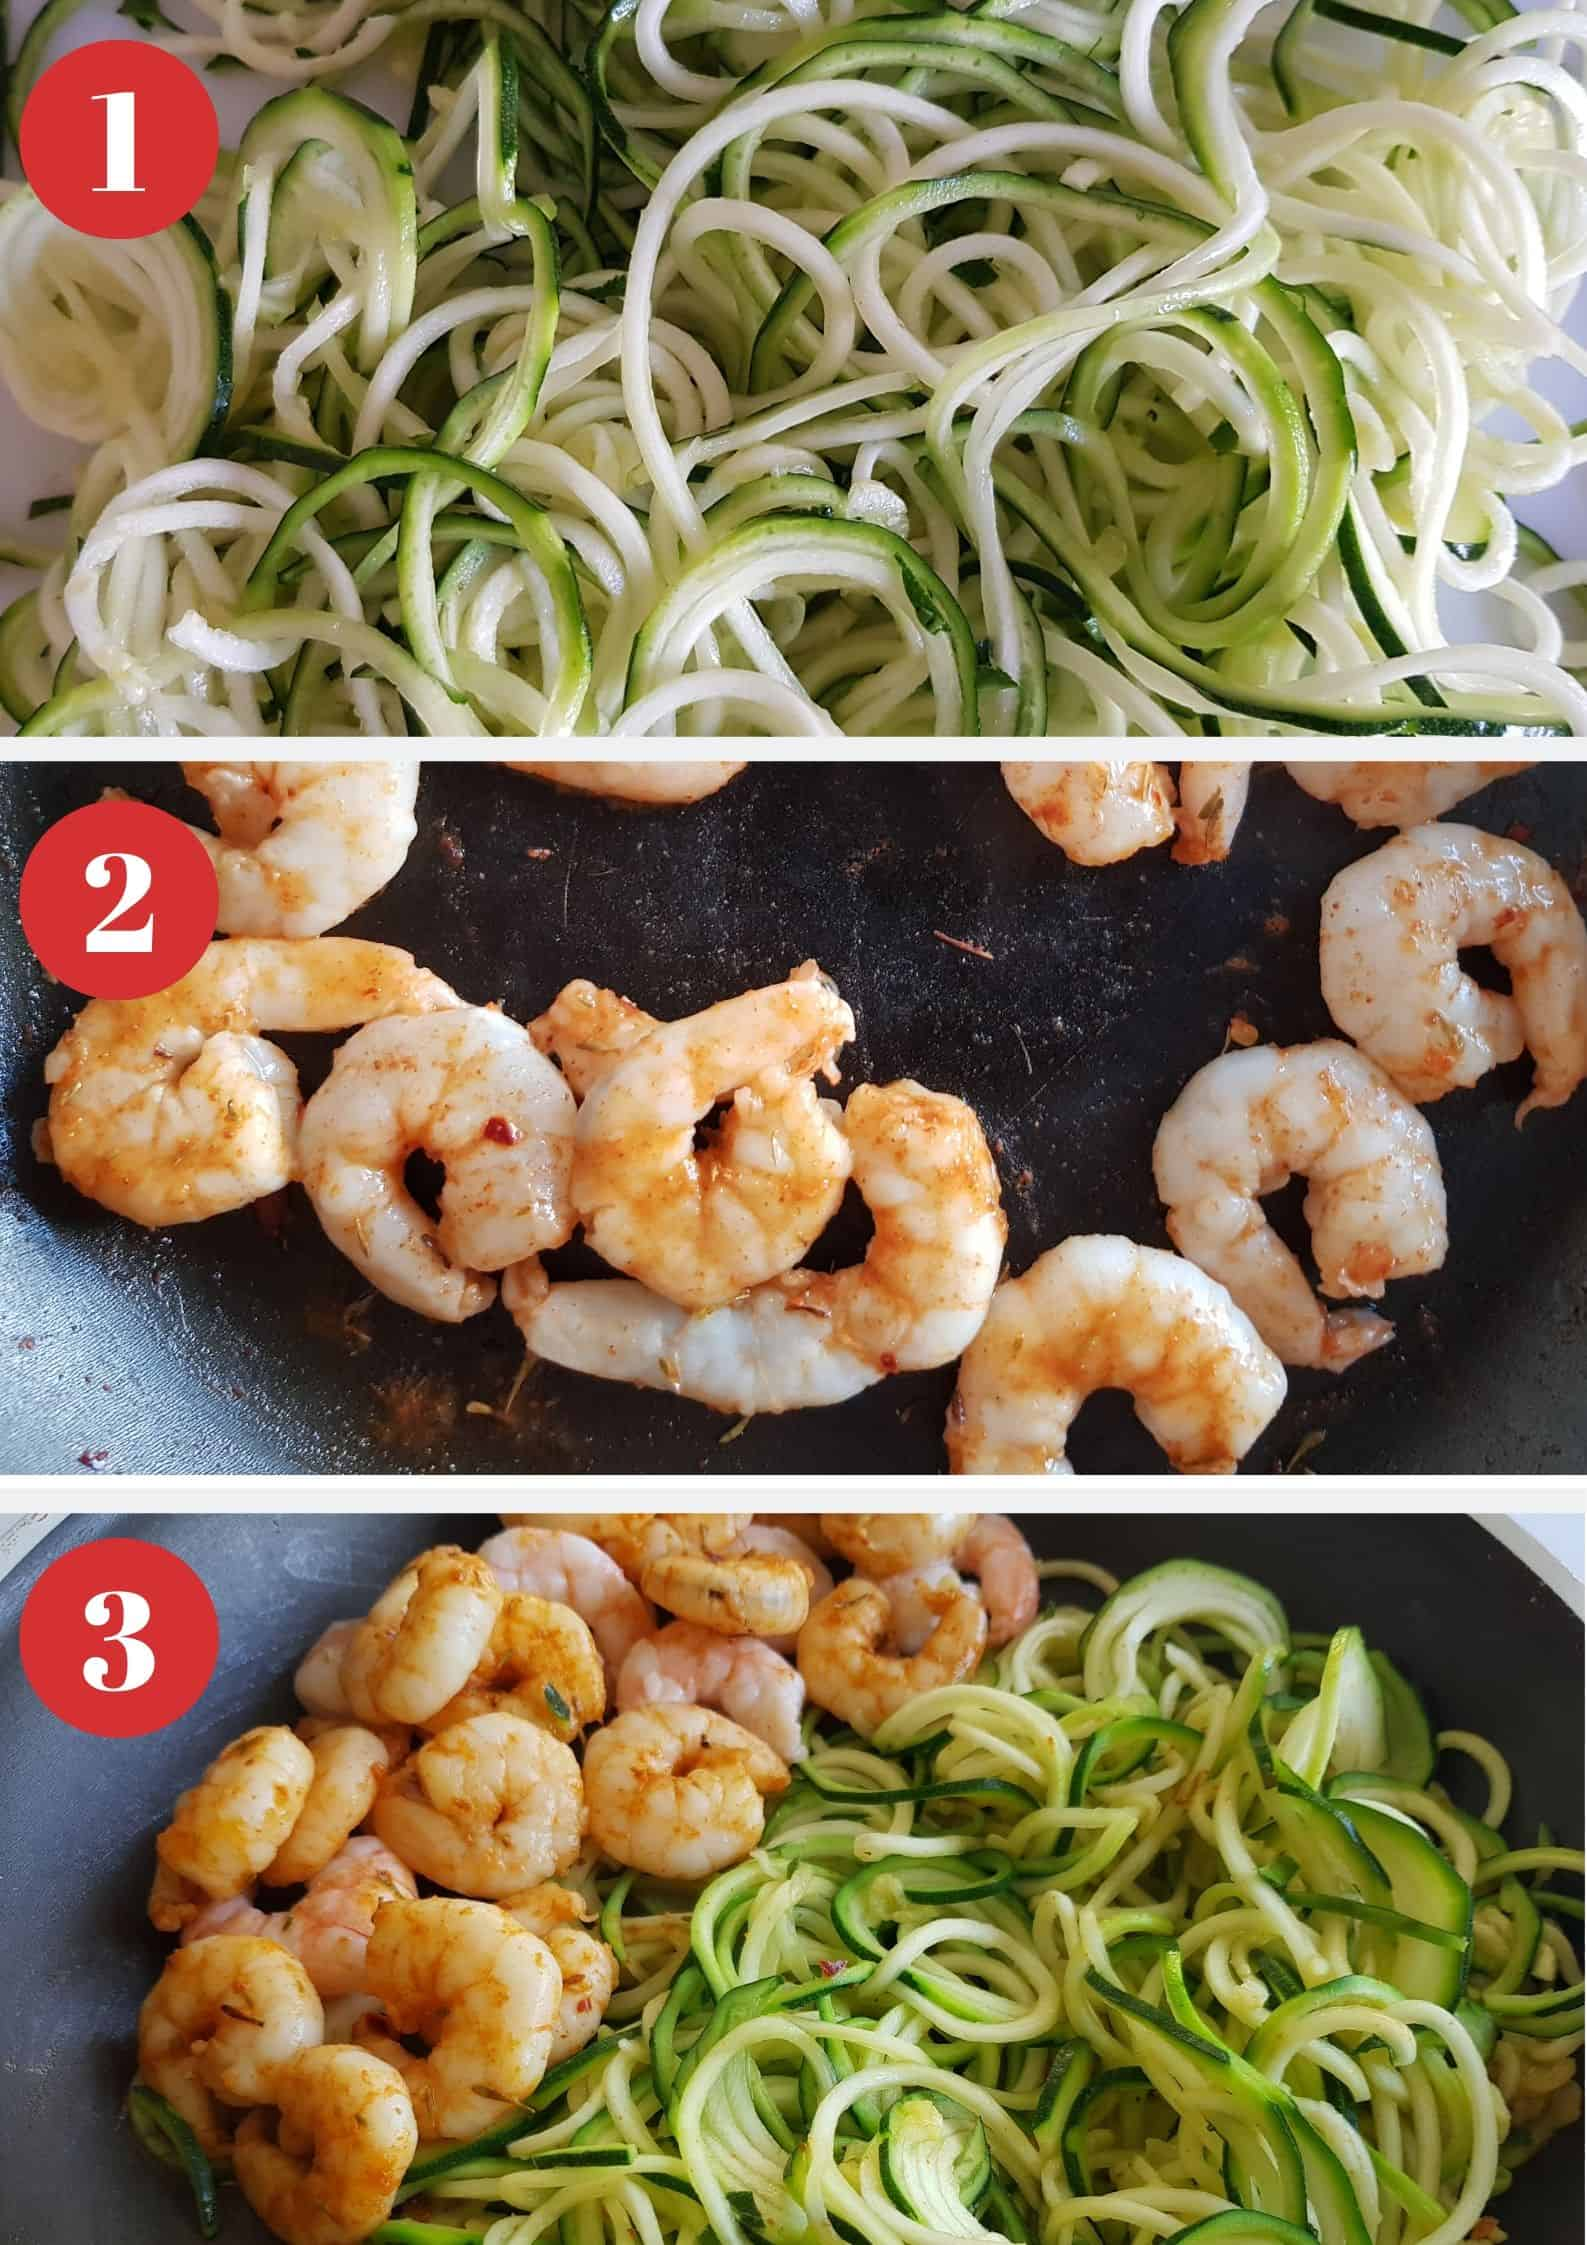 Infographic showing how to make zucchini noodles with shrimp.